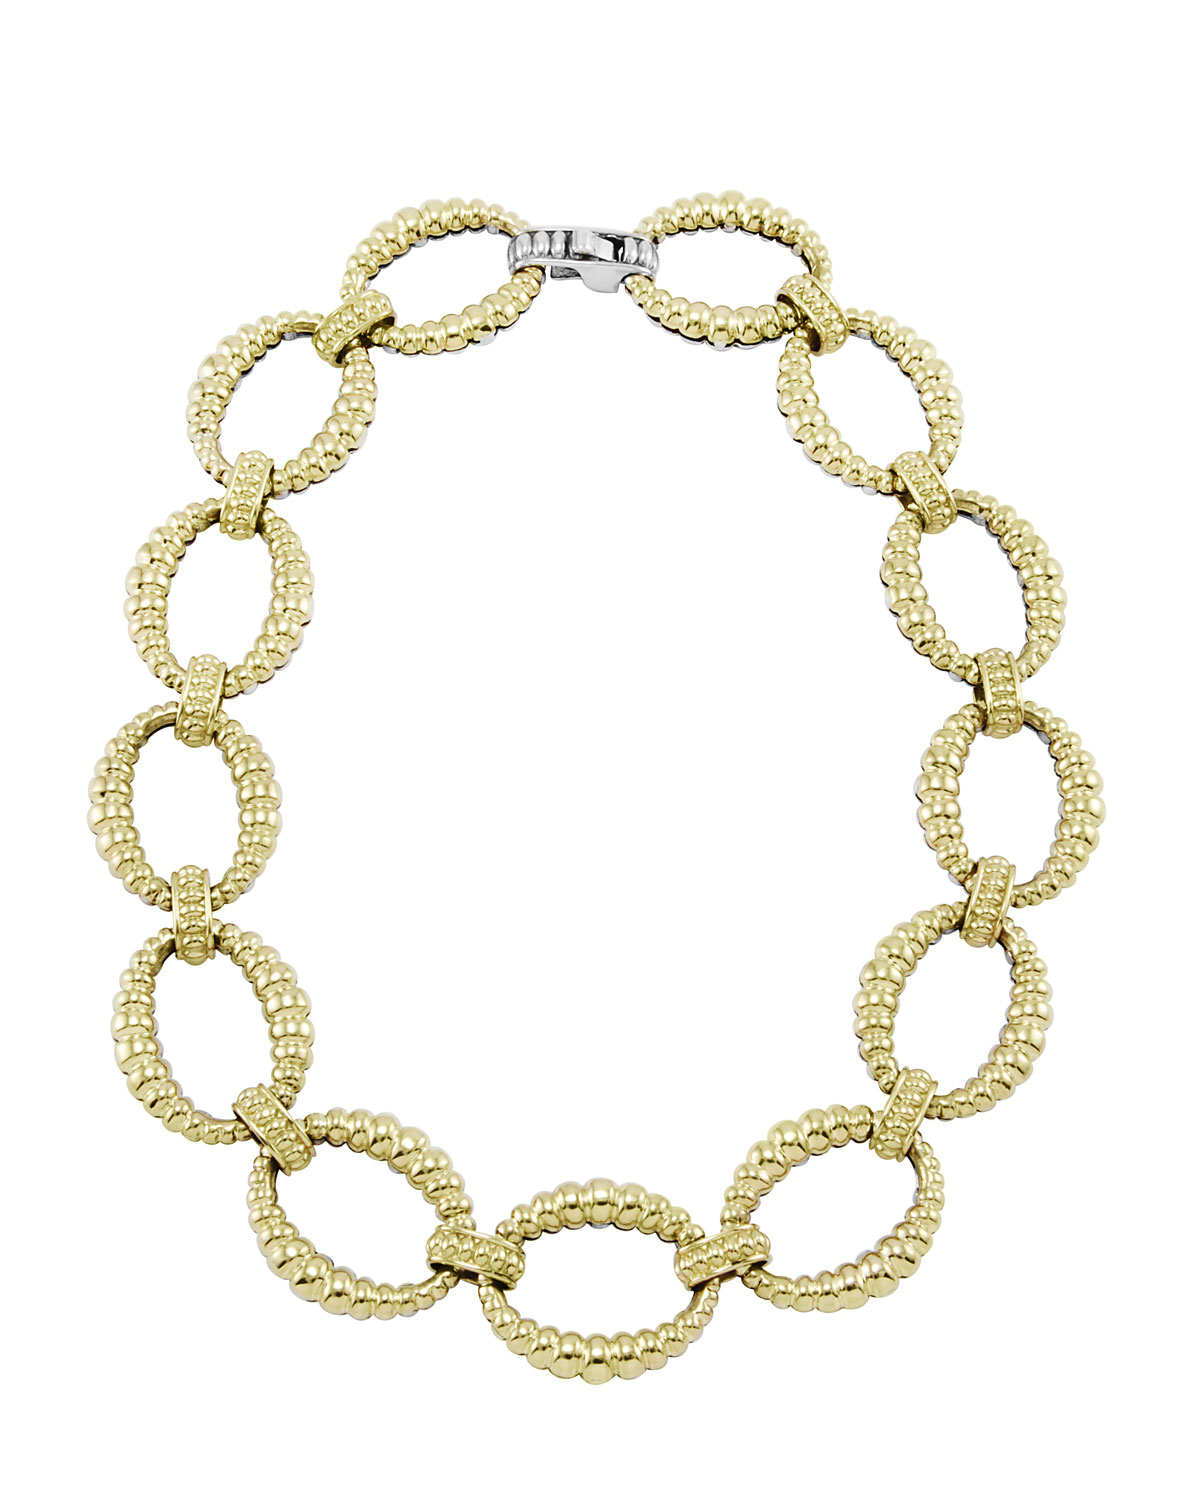 Reversible 18k Gold/Sterling Silver Link Necklace   Lagos   Silver (18k )